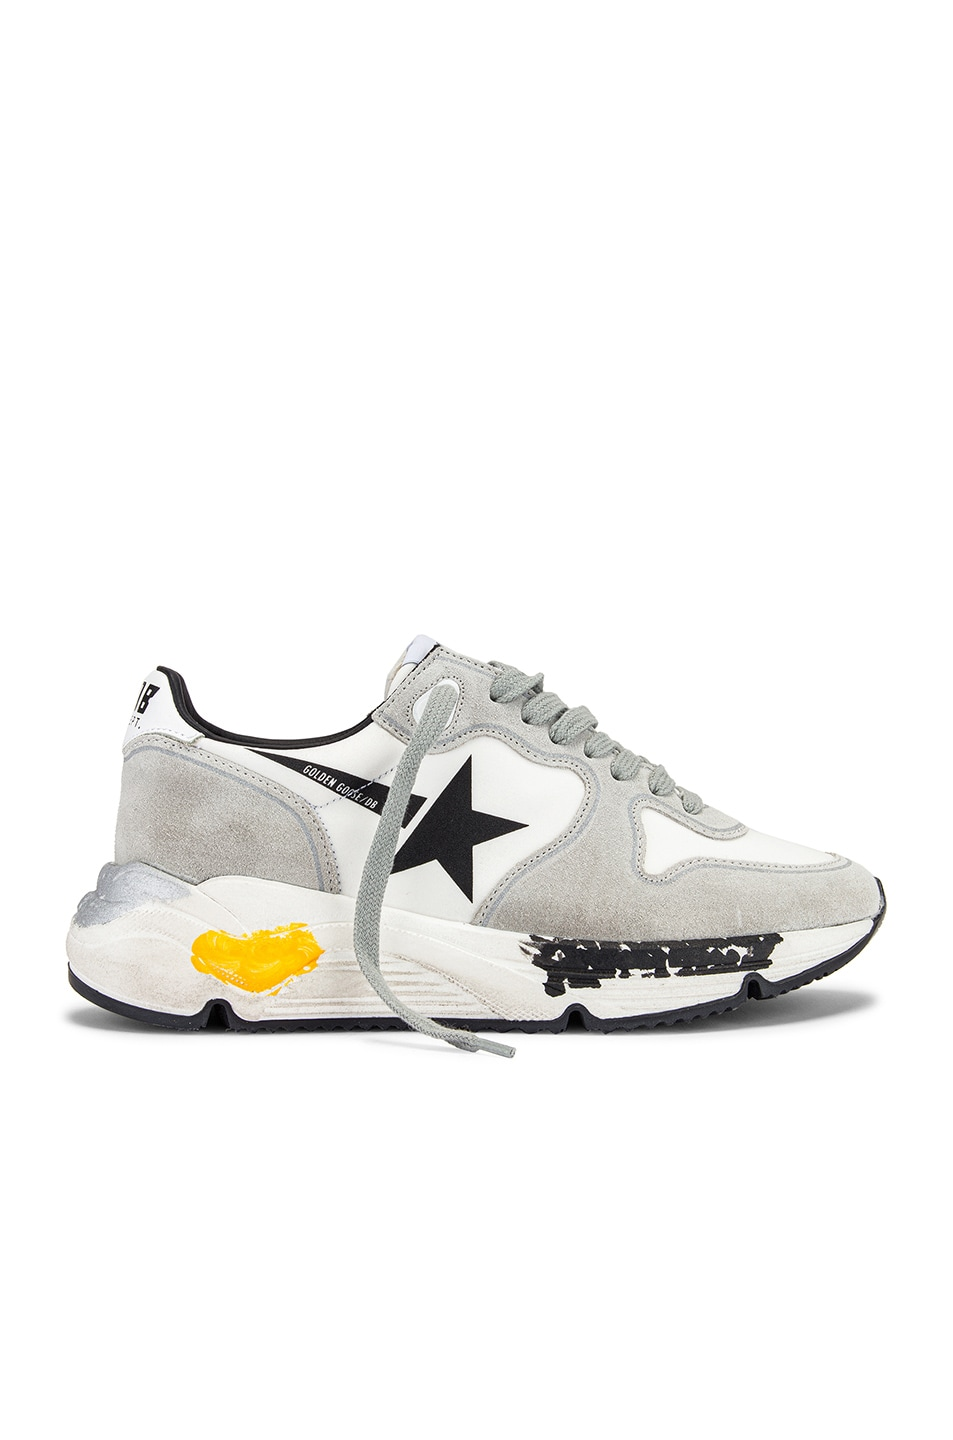 Image 1 of Golden Goose Running Sole Sneaker in White Lycra & Black